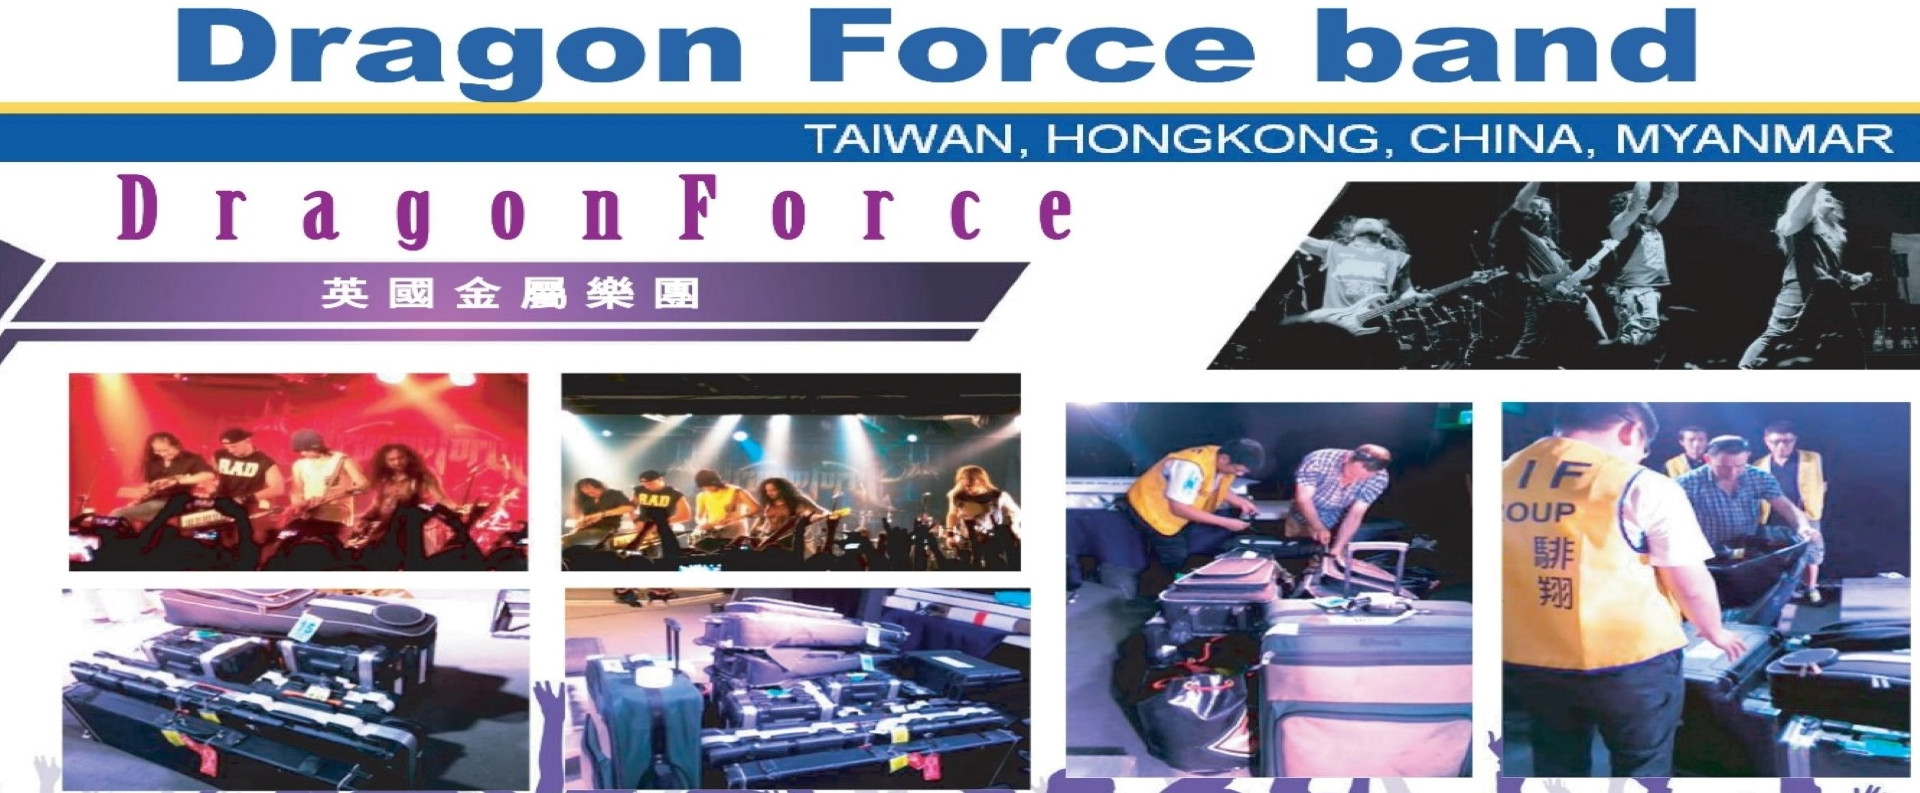 Dragon Force band